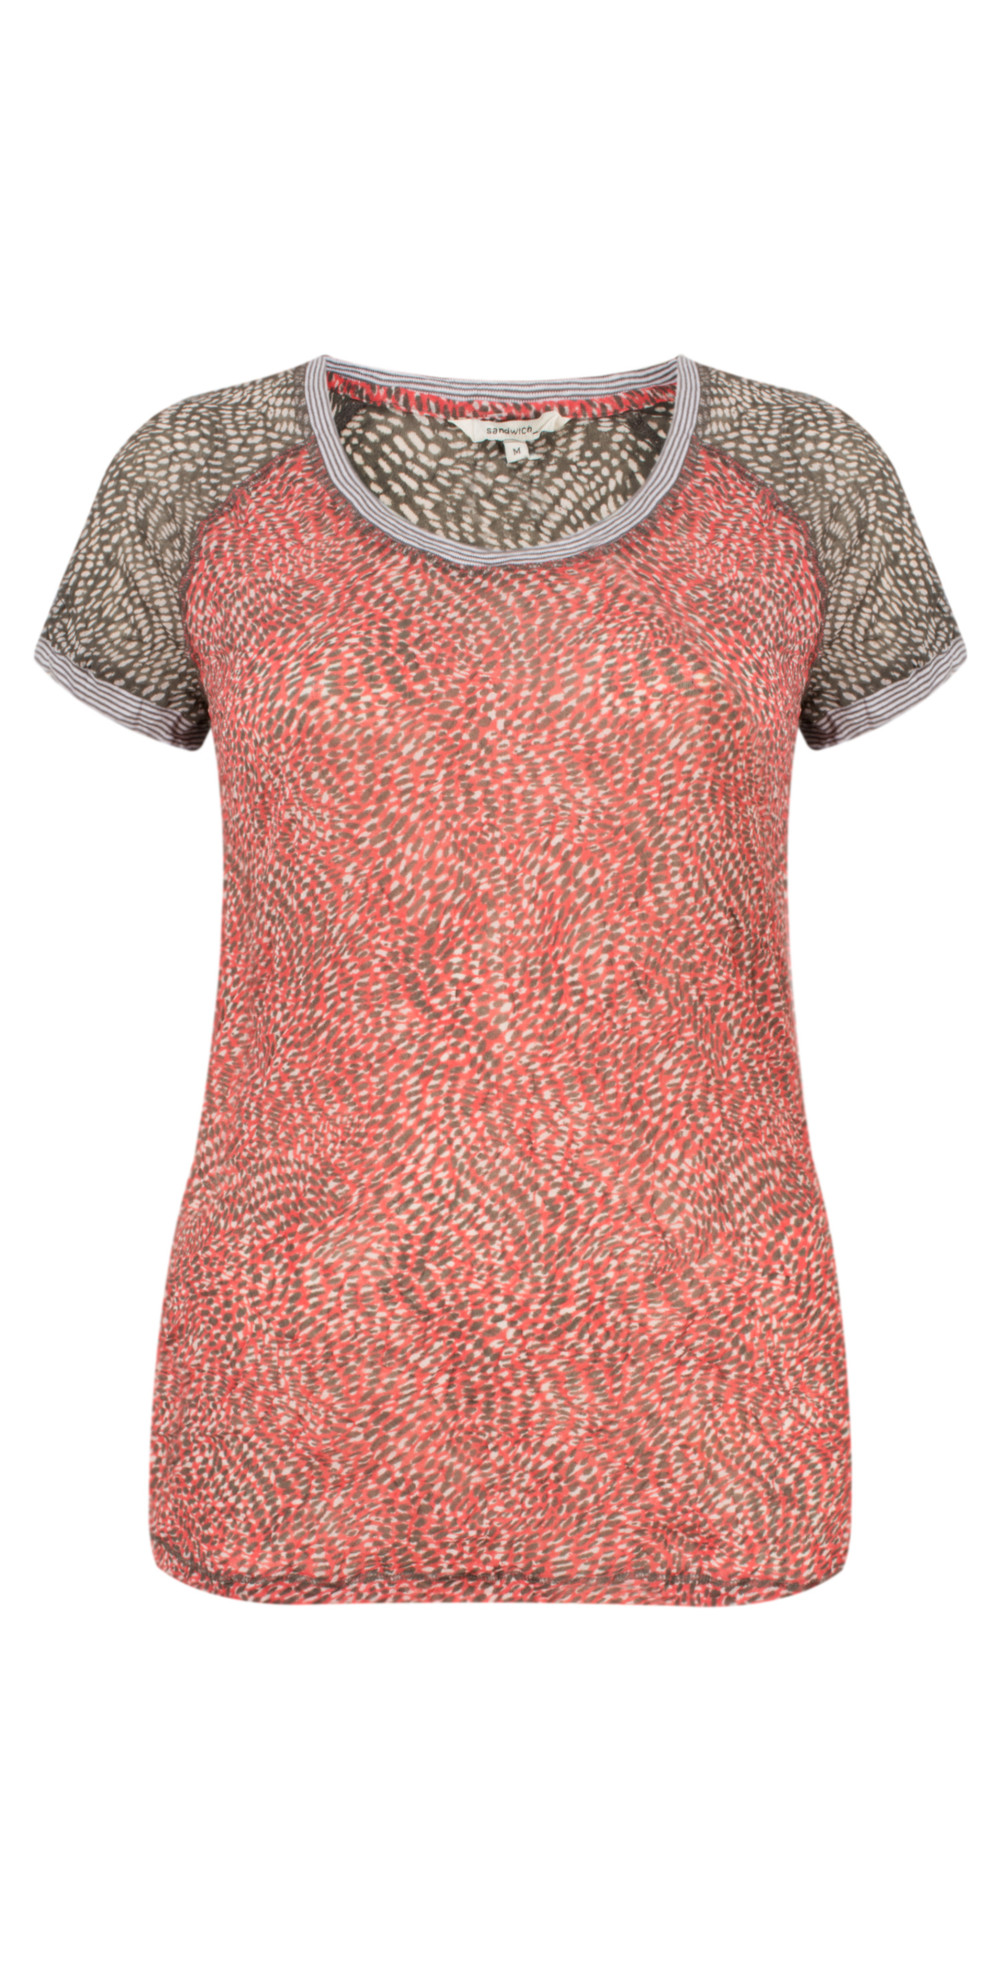 Dotted Print Short Sleeve Tshirt main image